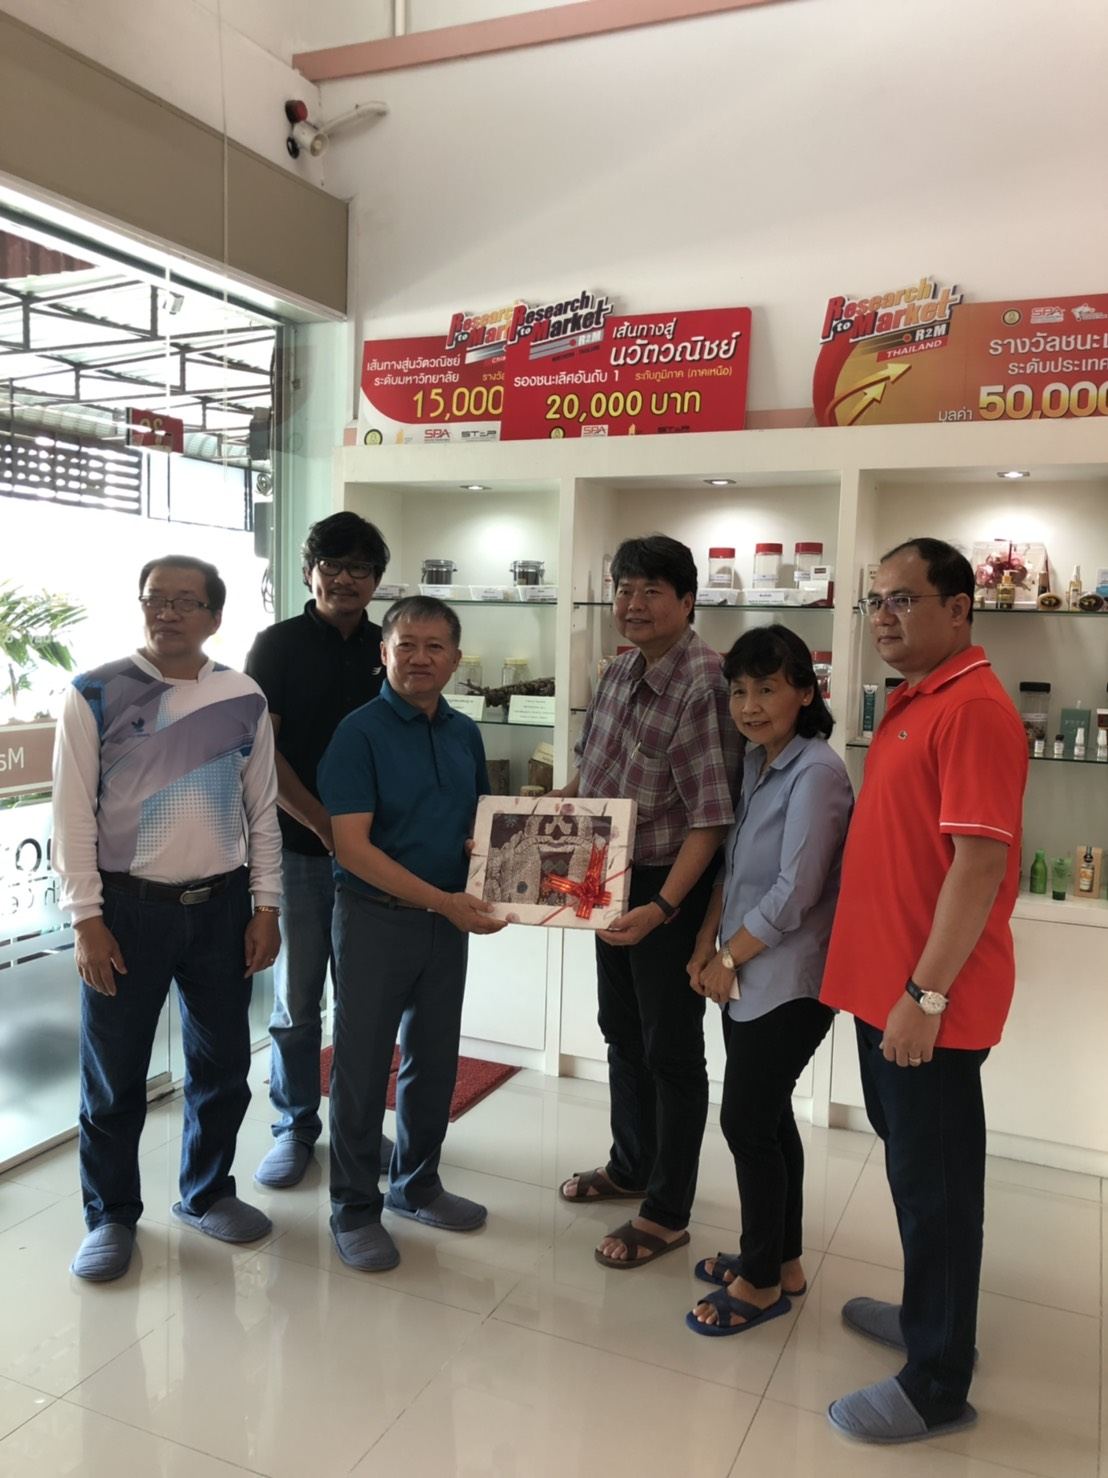 Mr. Sawet Tachumpa, the assistant to the vice – president of North – Chiang Mai University has brought Nonghai group from Laos People's Democratic Republic to visit Manose Health and Beauty Research Center